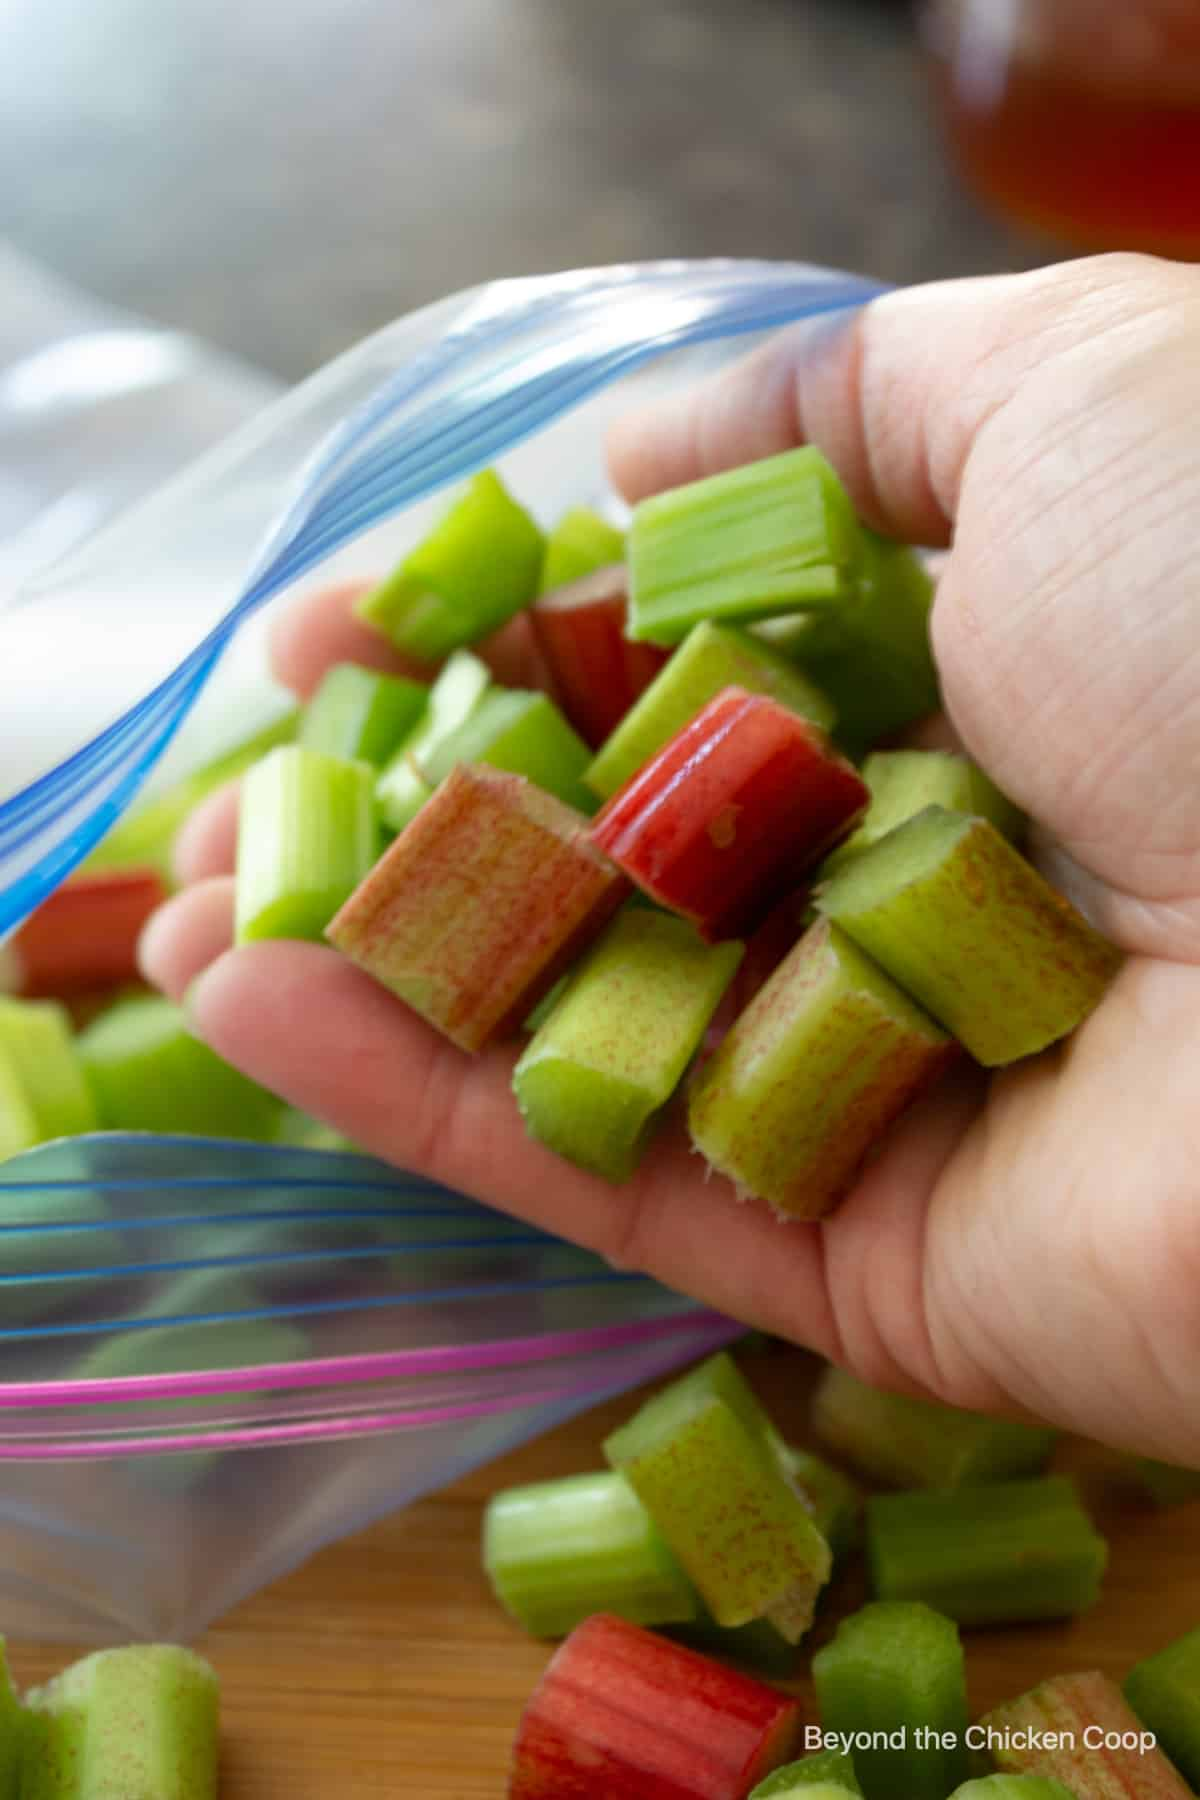 Placing a handful of cut rhubarb into a plastic bag.